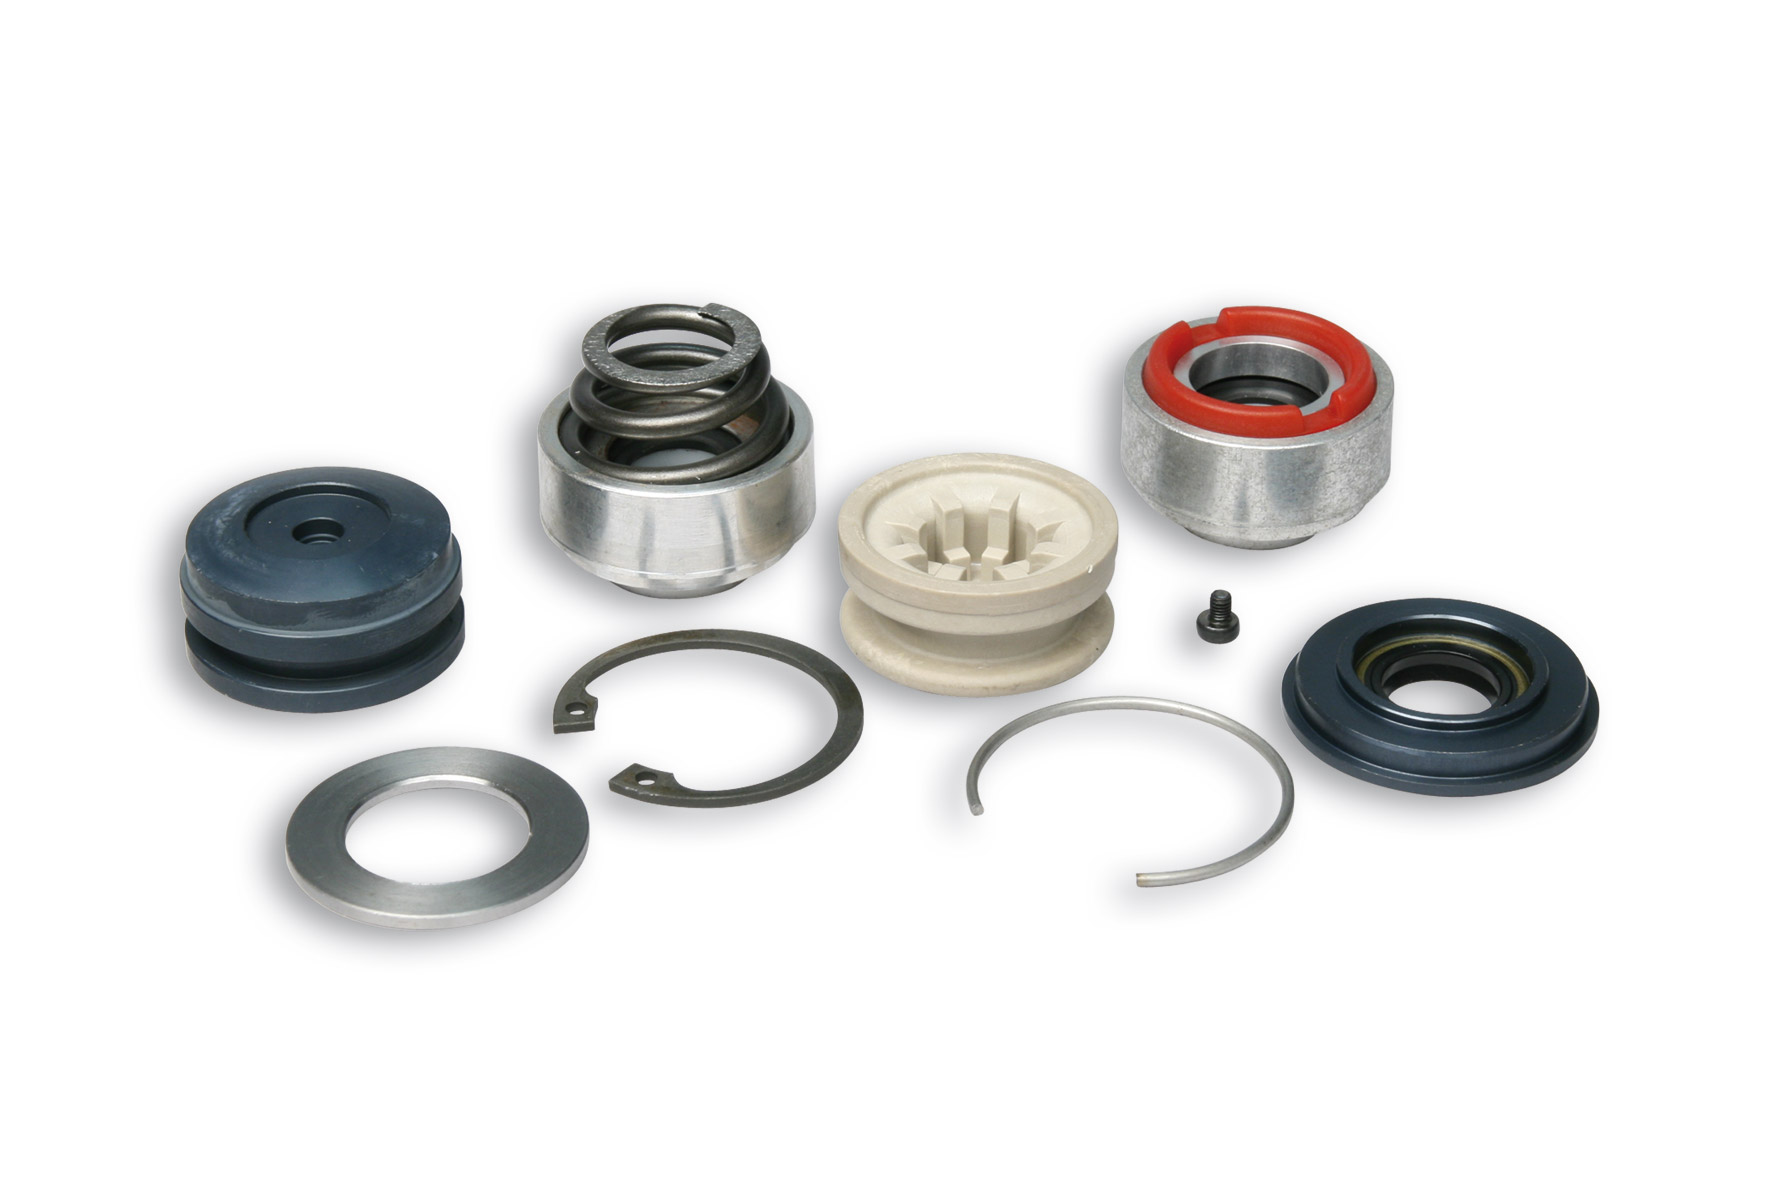 OVERHAUL KIT (with SLEEVES) for SHOCK ABSORBER